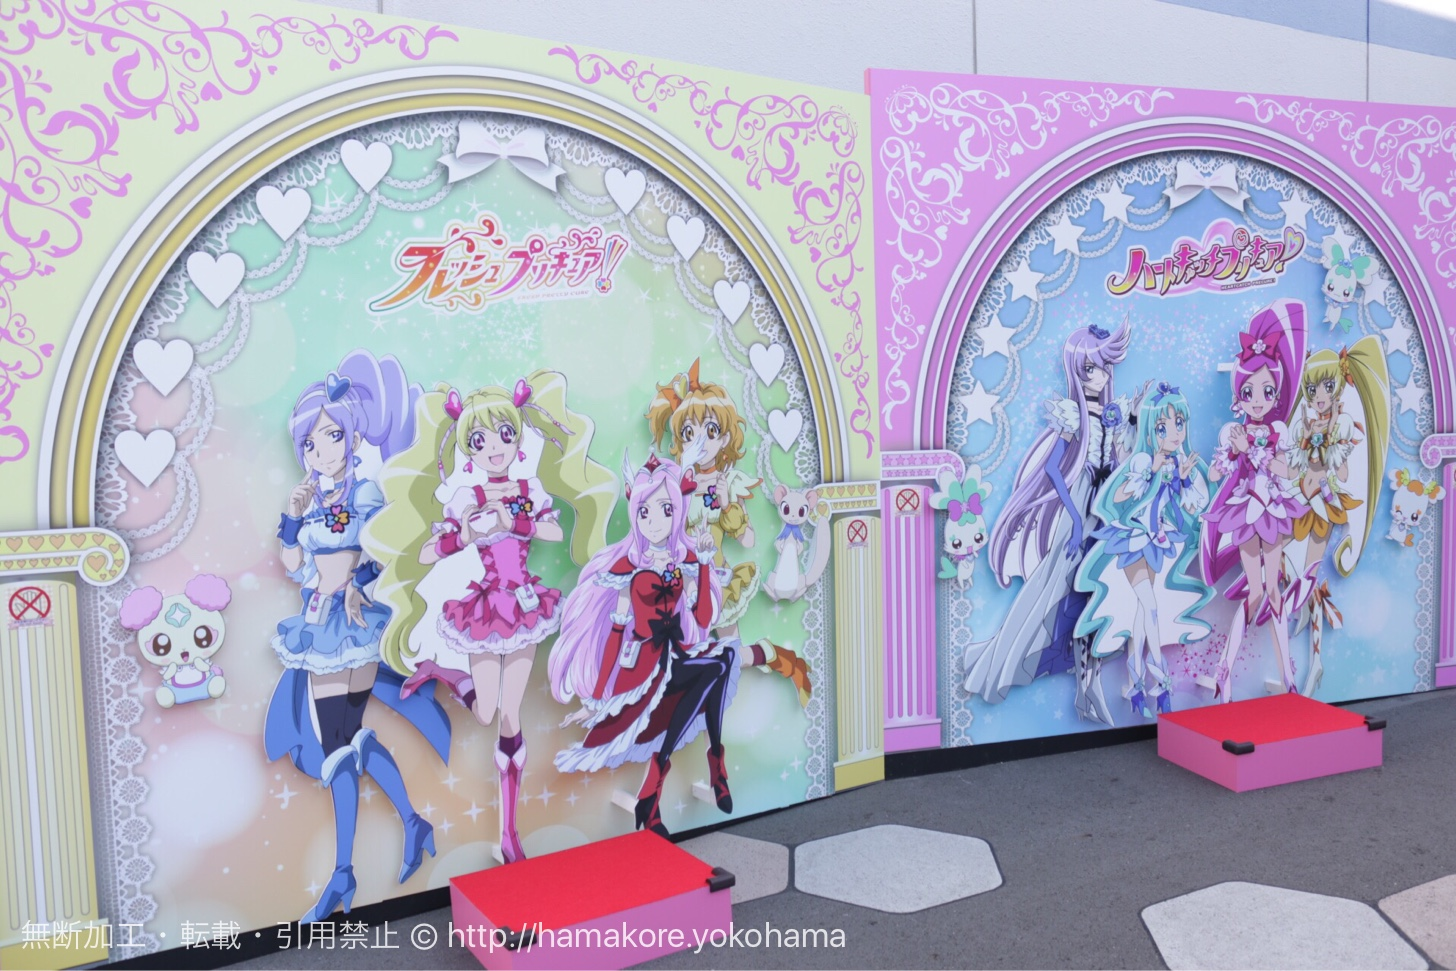 DMM VR THEATER プリキュアフォトスポット